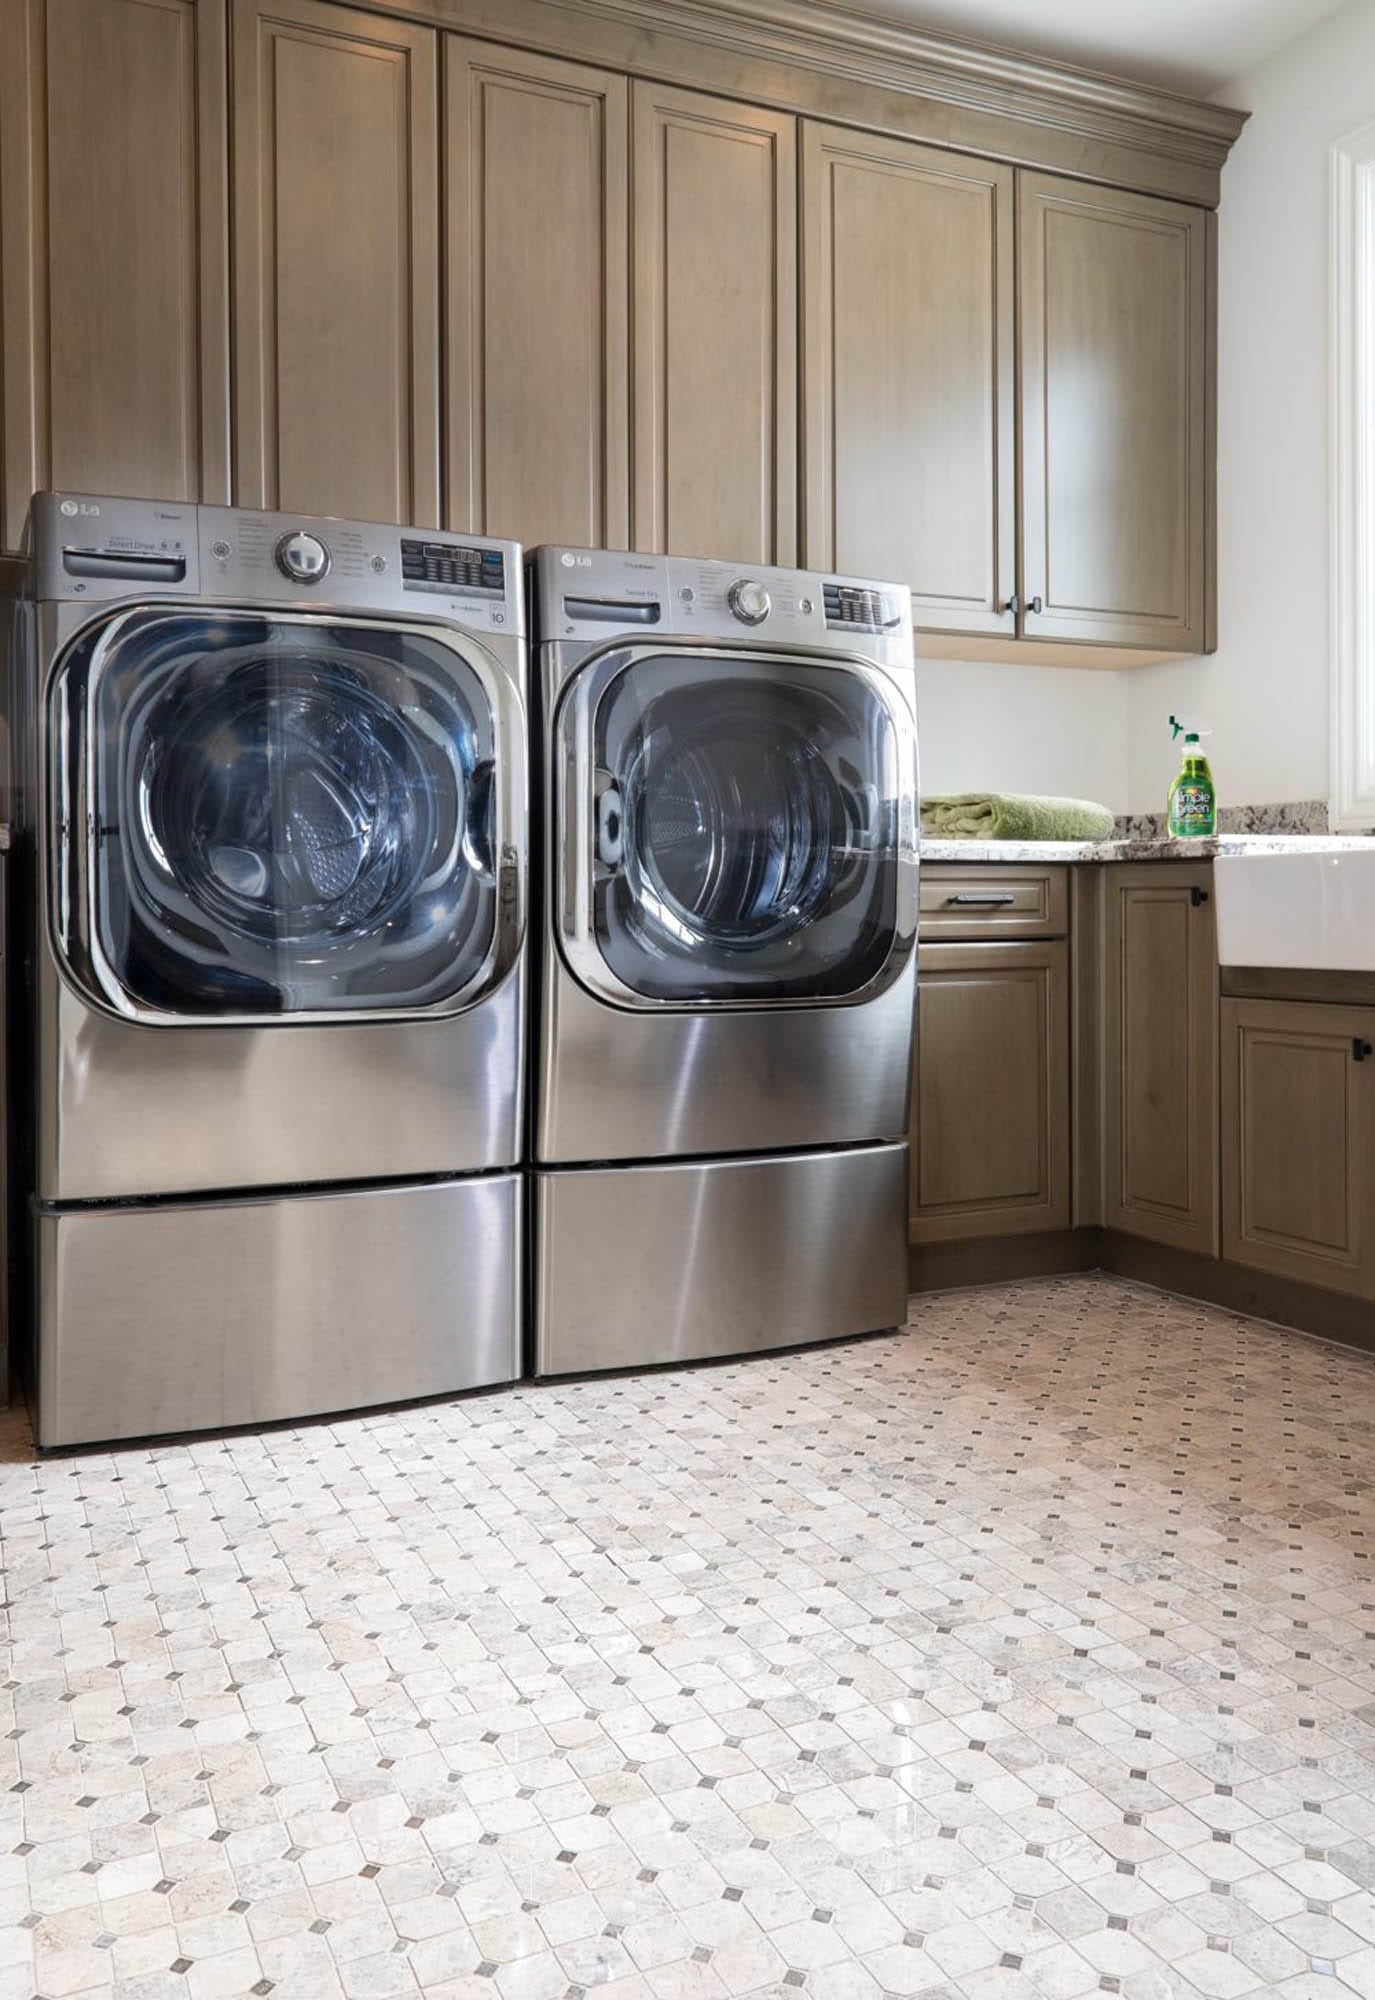 Traditional warm laundry room